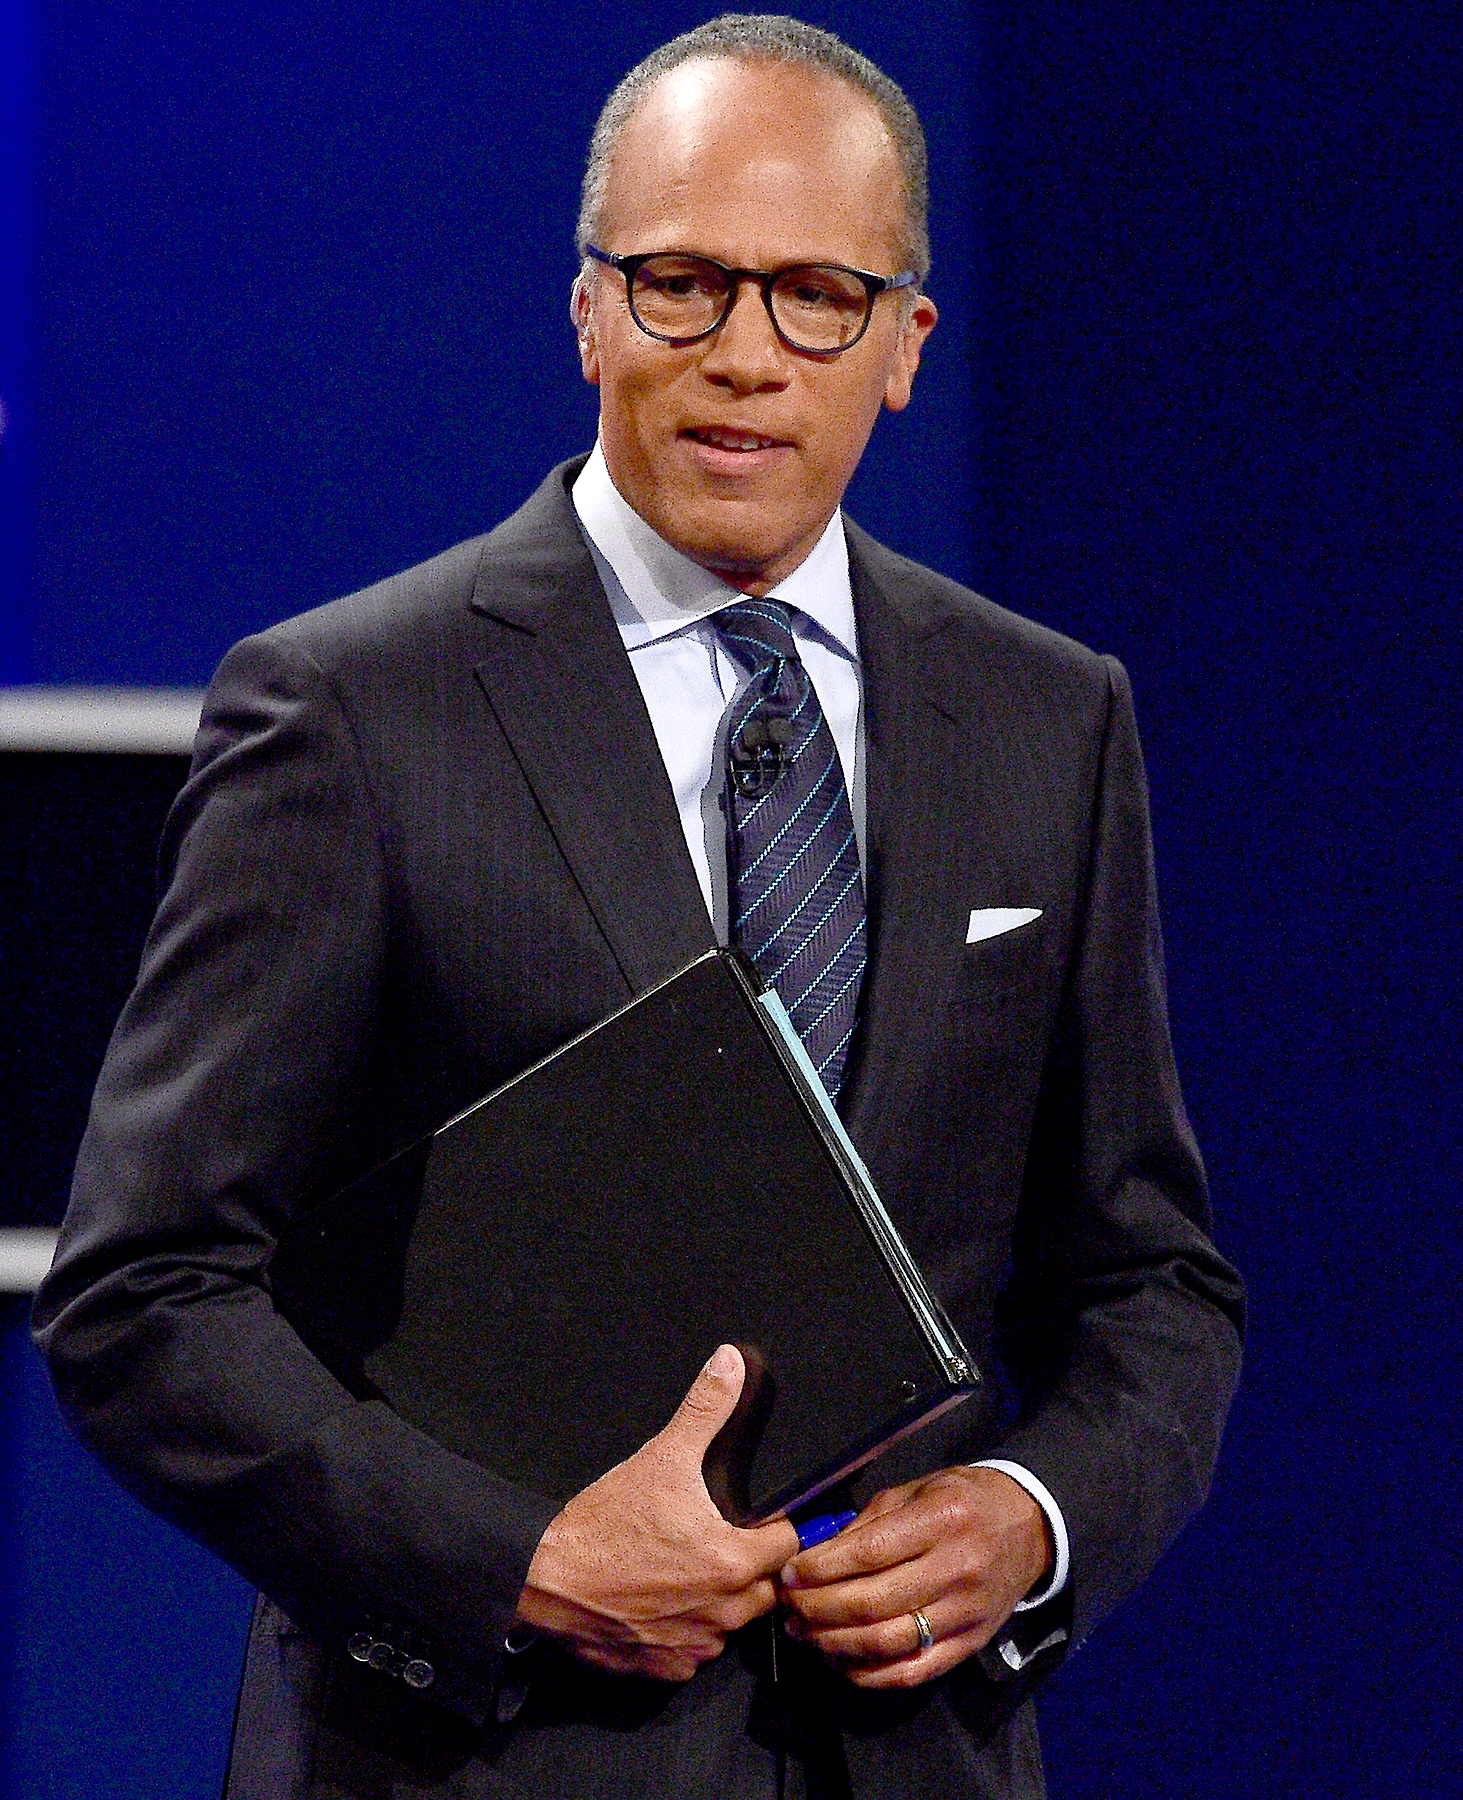 Lester Holt 25 Things You Dont Know About Me